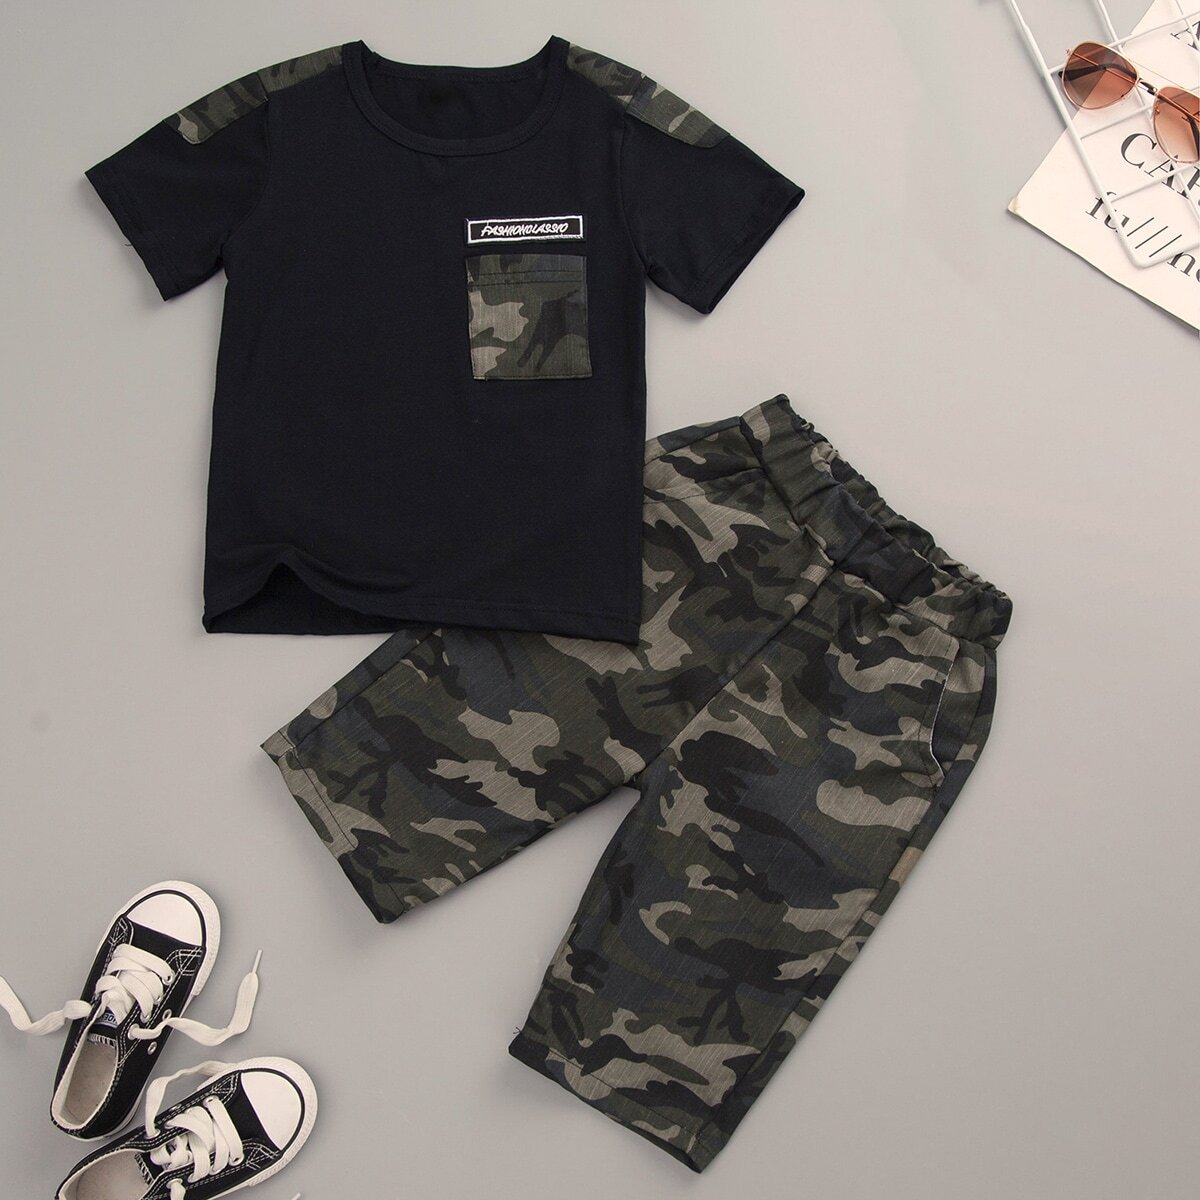 SHEIN coupon: Toddler Boys Contrast Camo Letter Patched Tee With Pants